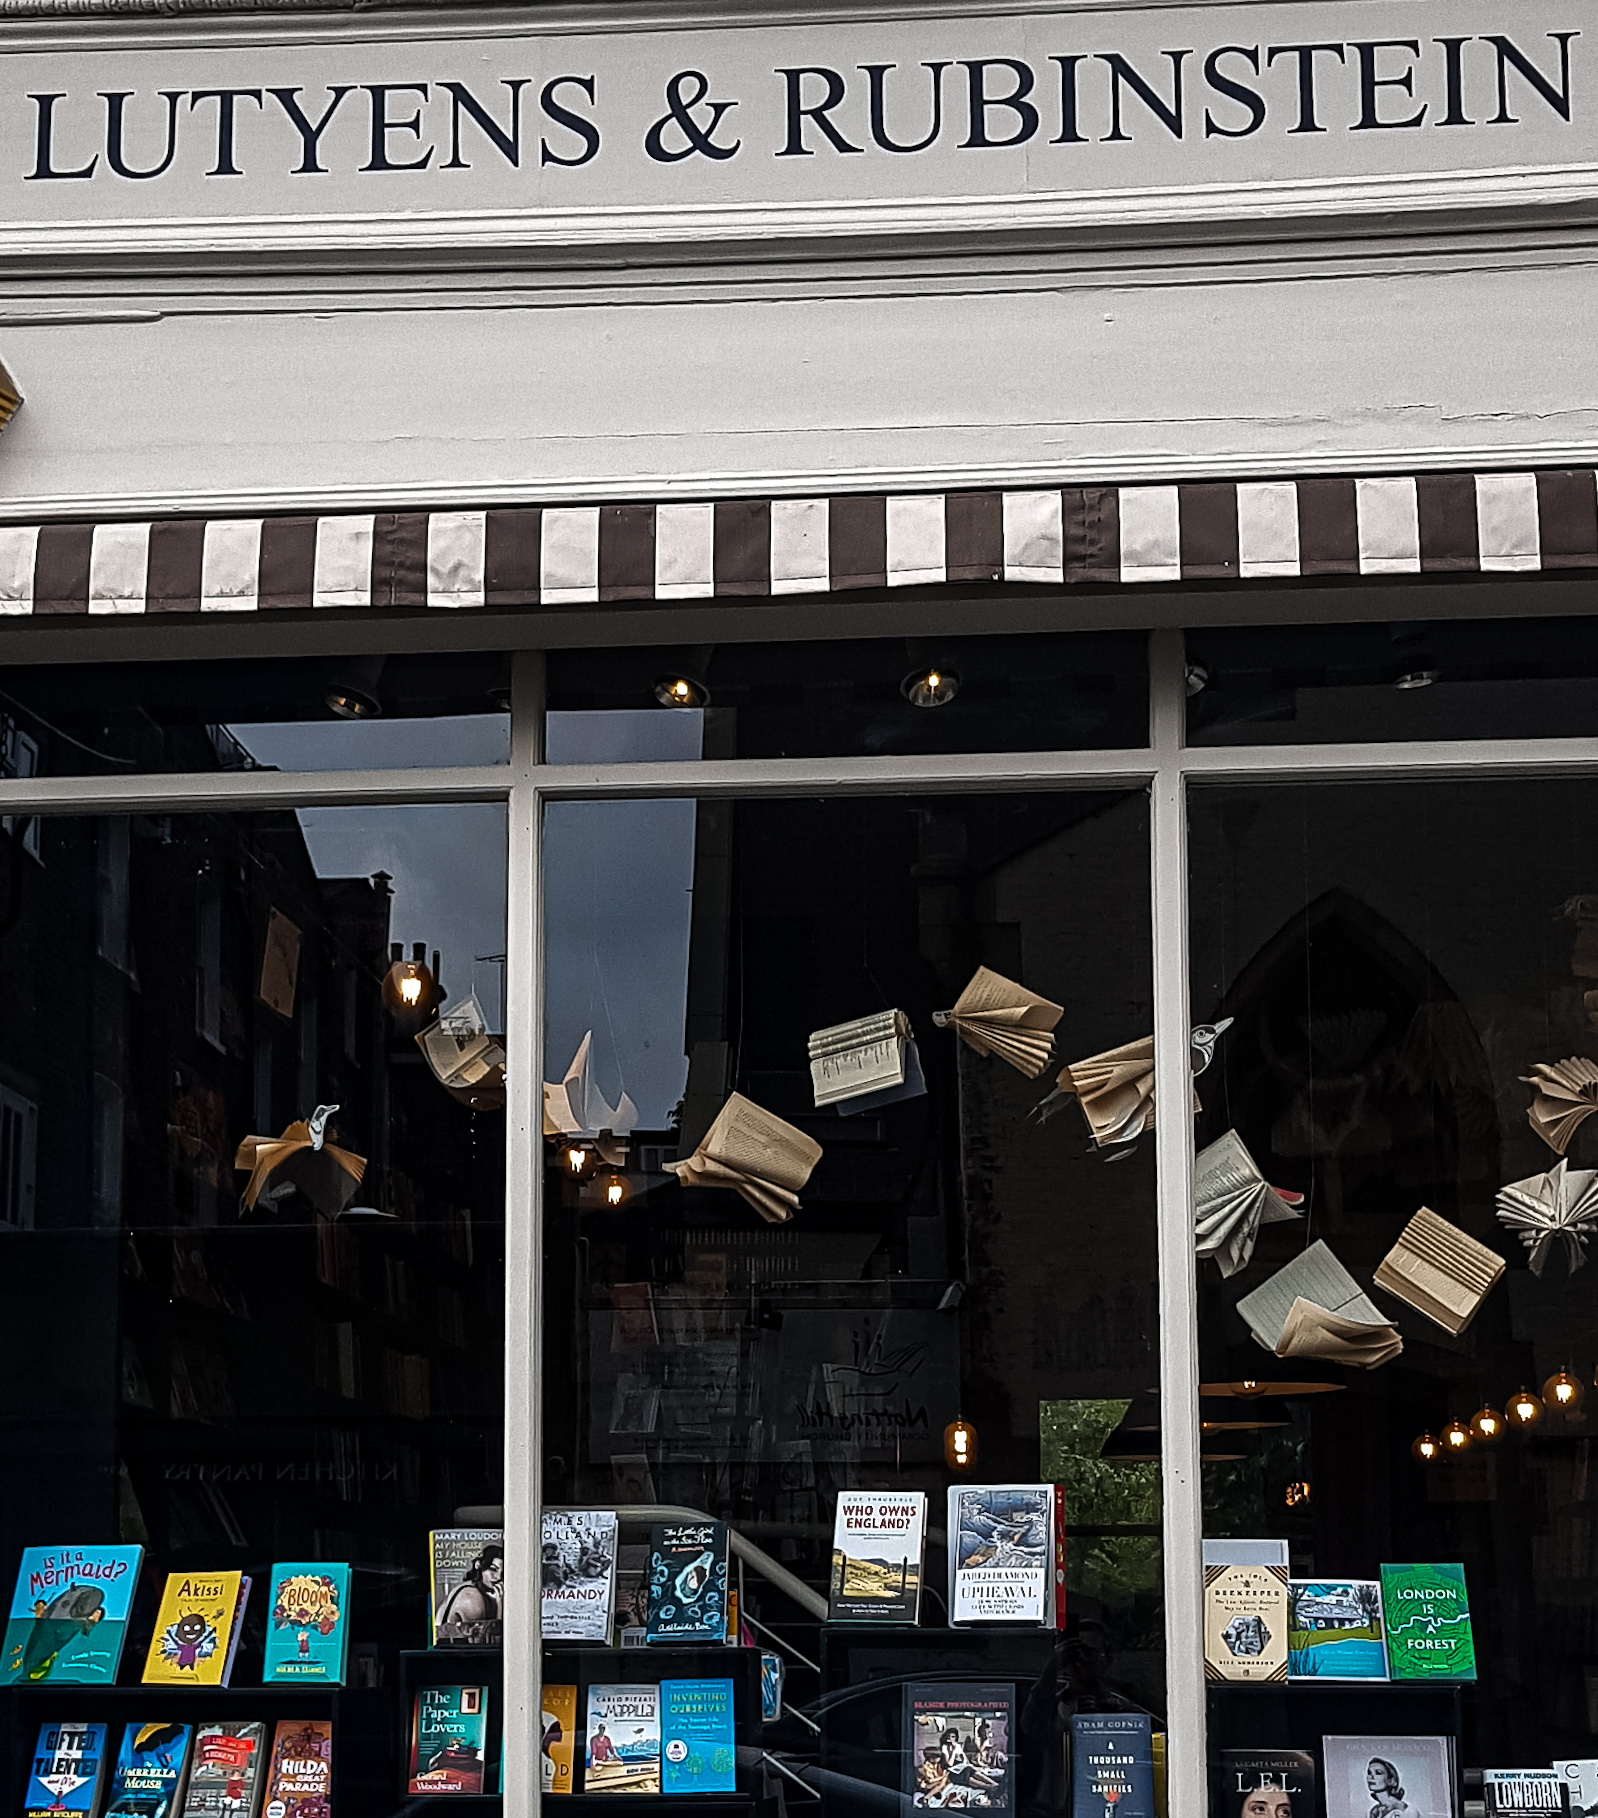 Lutyens and Rubinstein bookshop in Notting Hill Gate